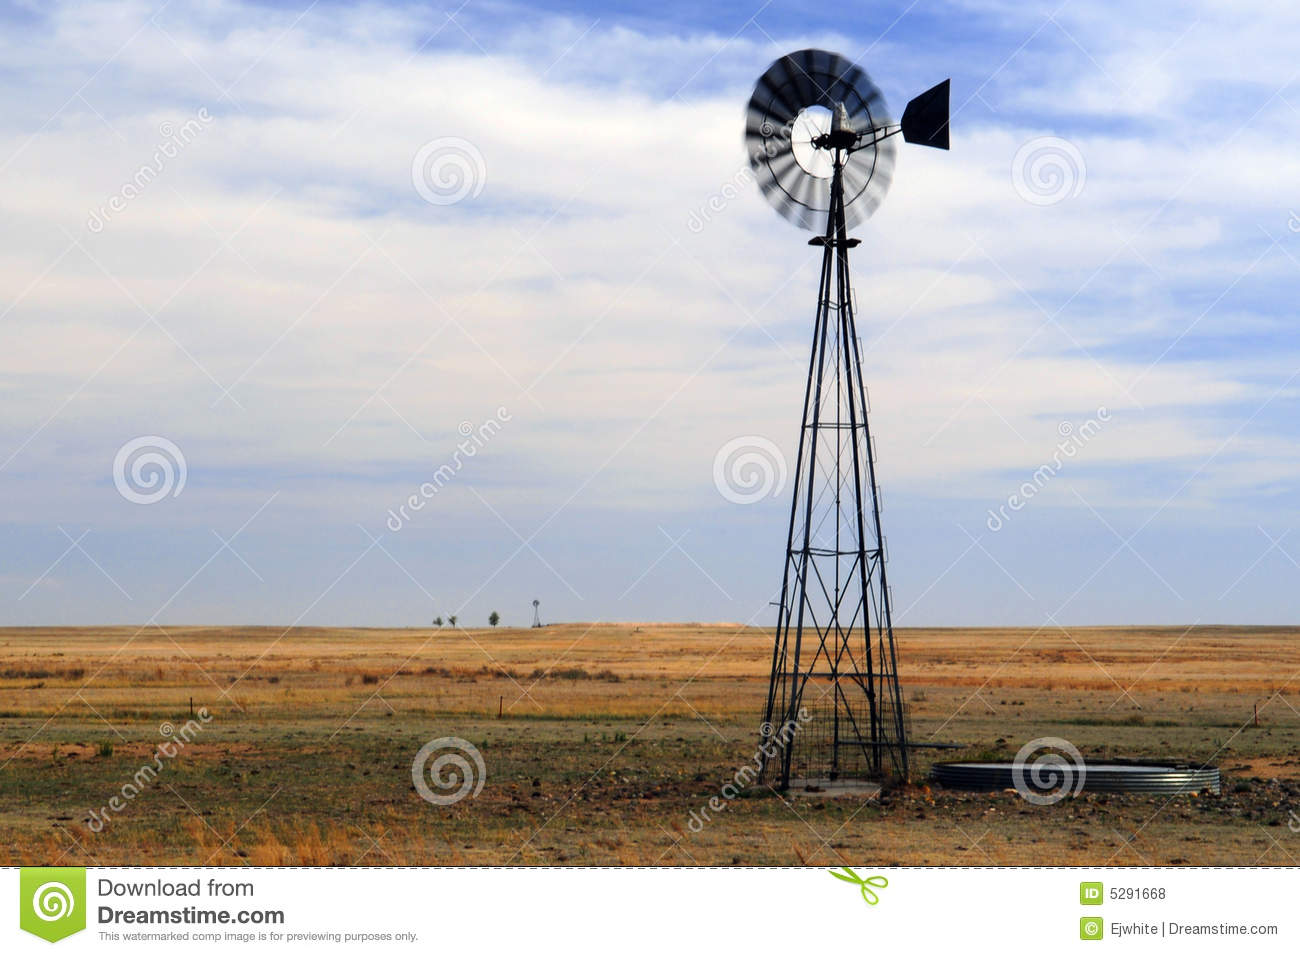 Great Plains clipart #7, Download drawings